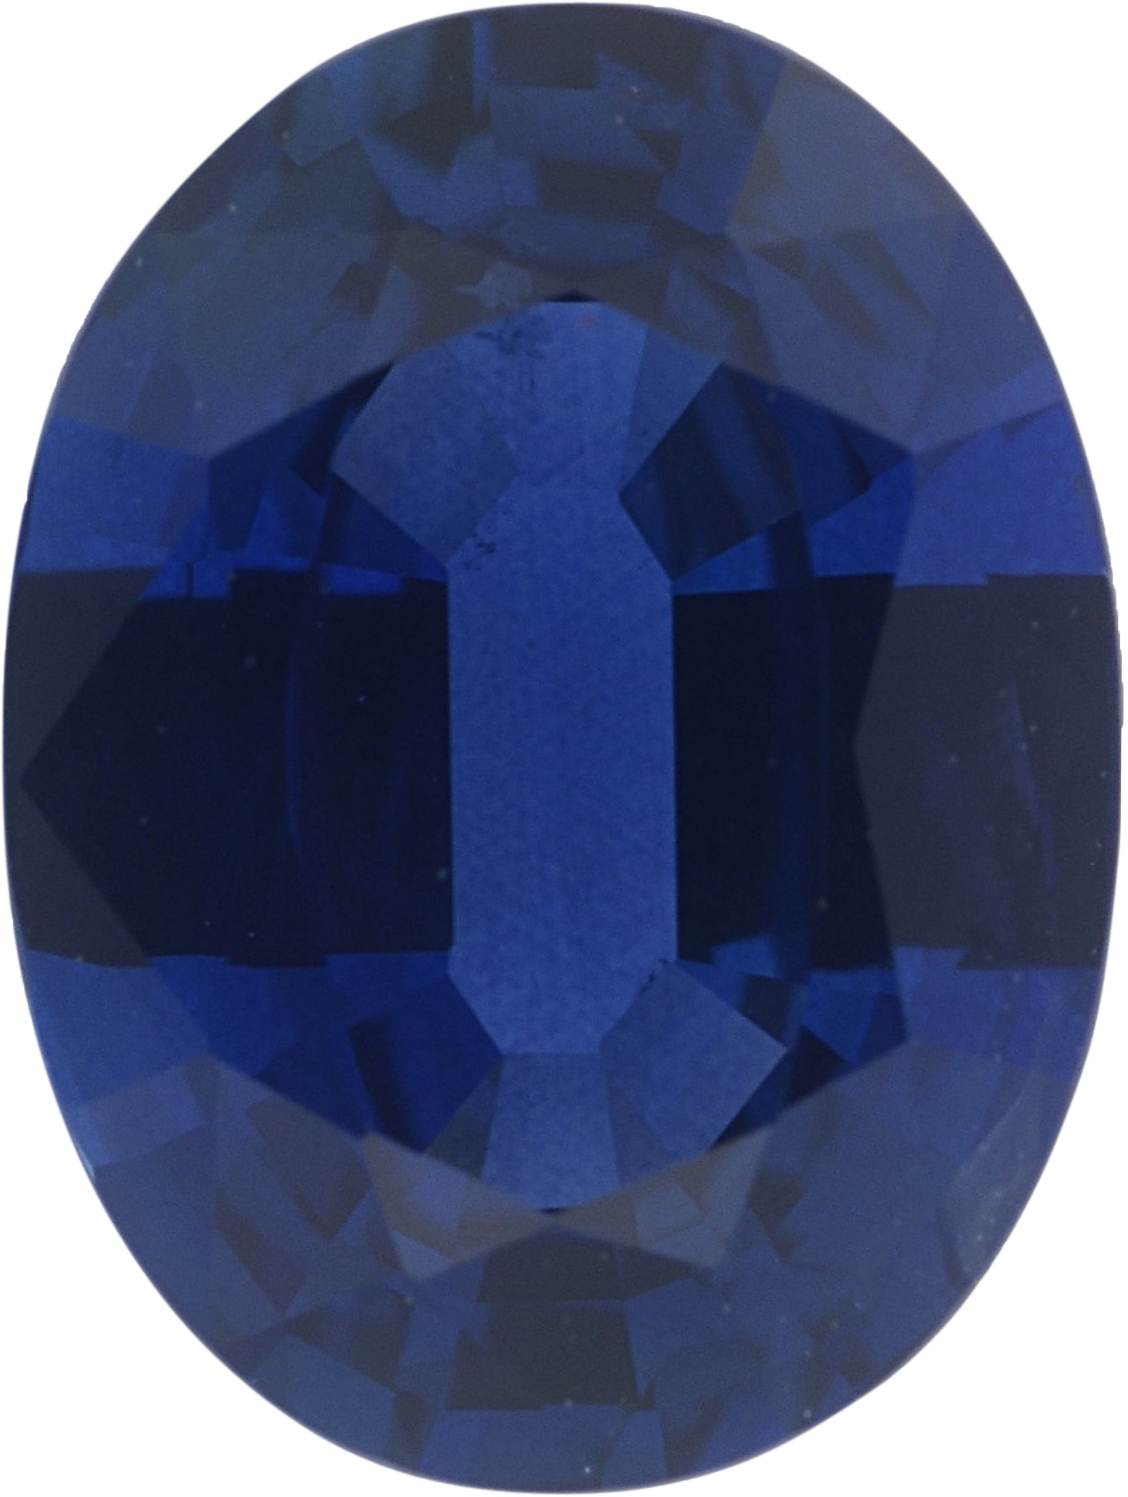 1.36 carats Blue Loose Sapphire Gemstone in Oval Cut, 7.84 x 5.9 mm